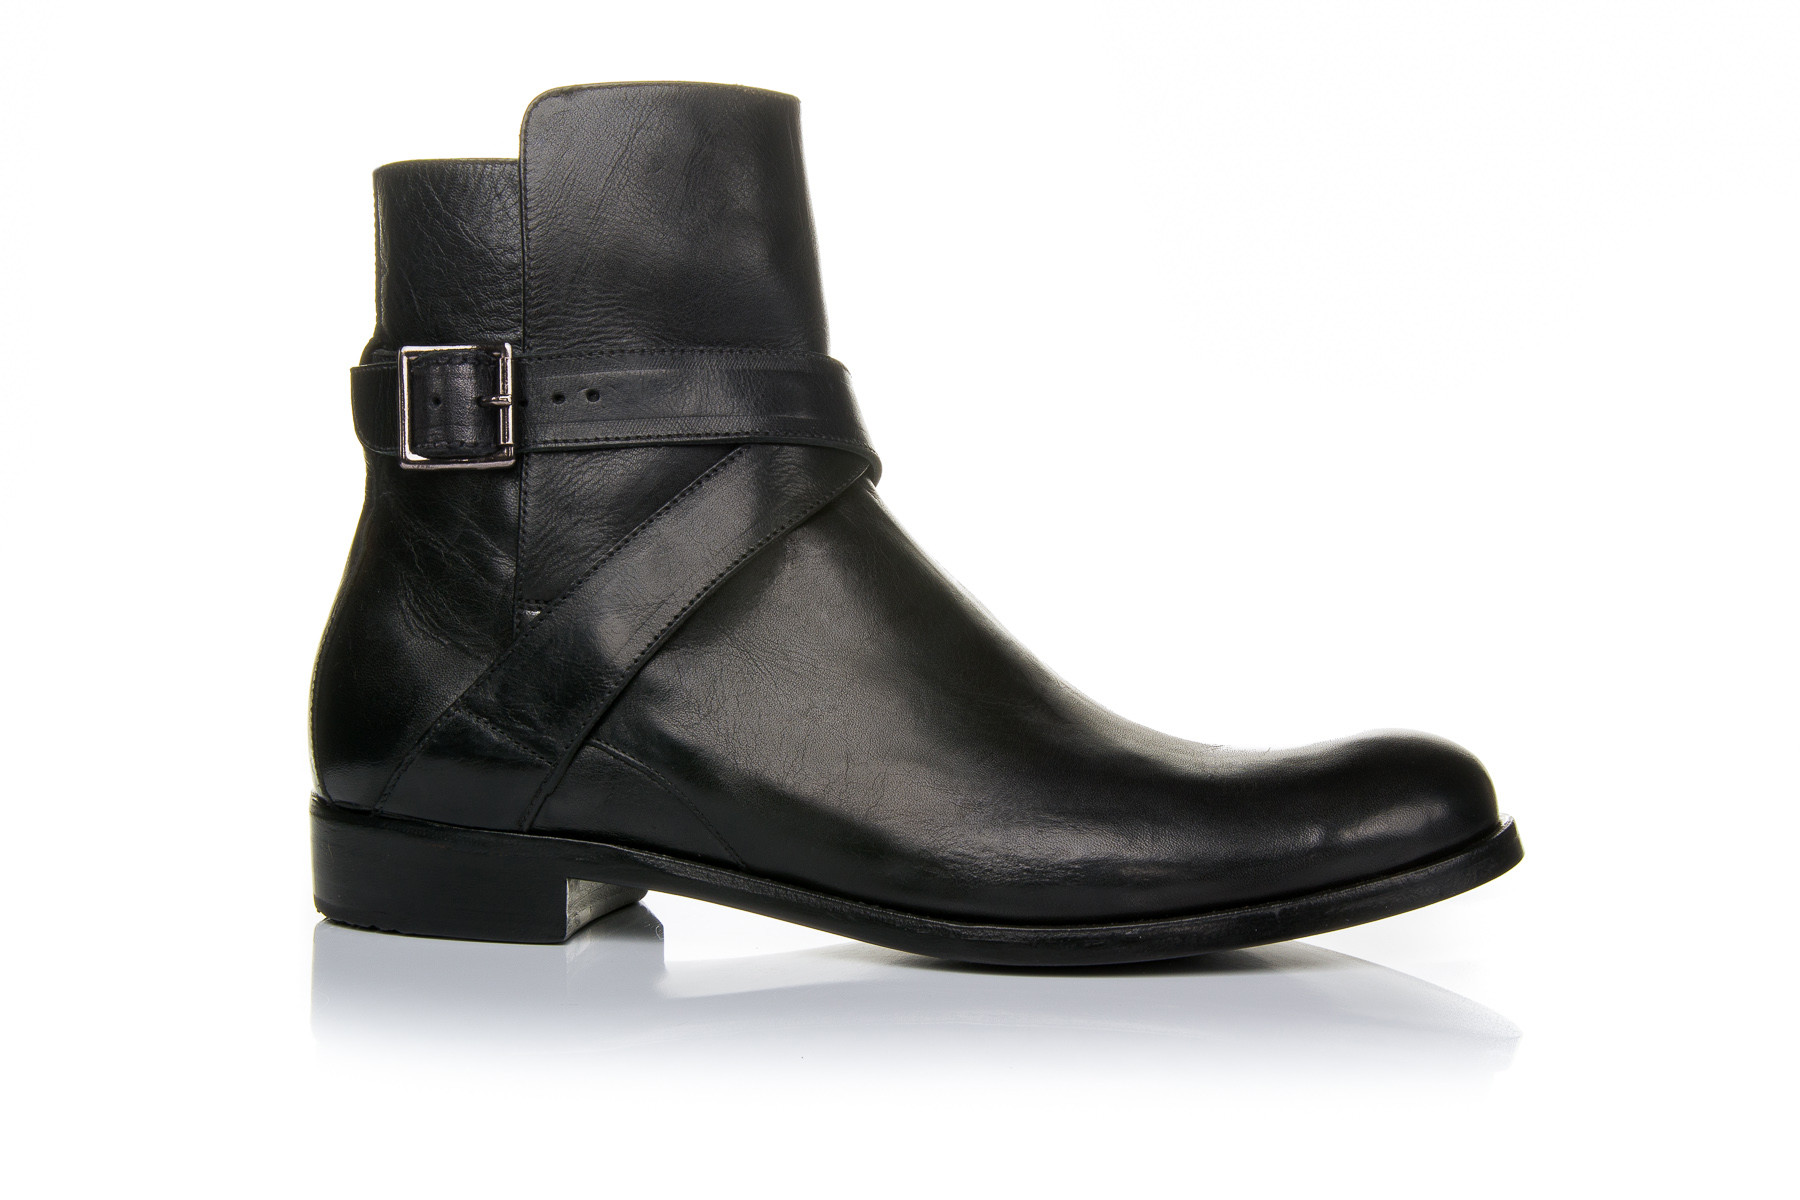 Mens Boots Made in America by Modern Vice. On Miss American Made's Weekly Wants and Needs List